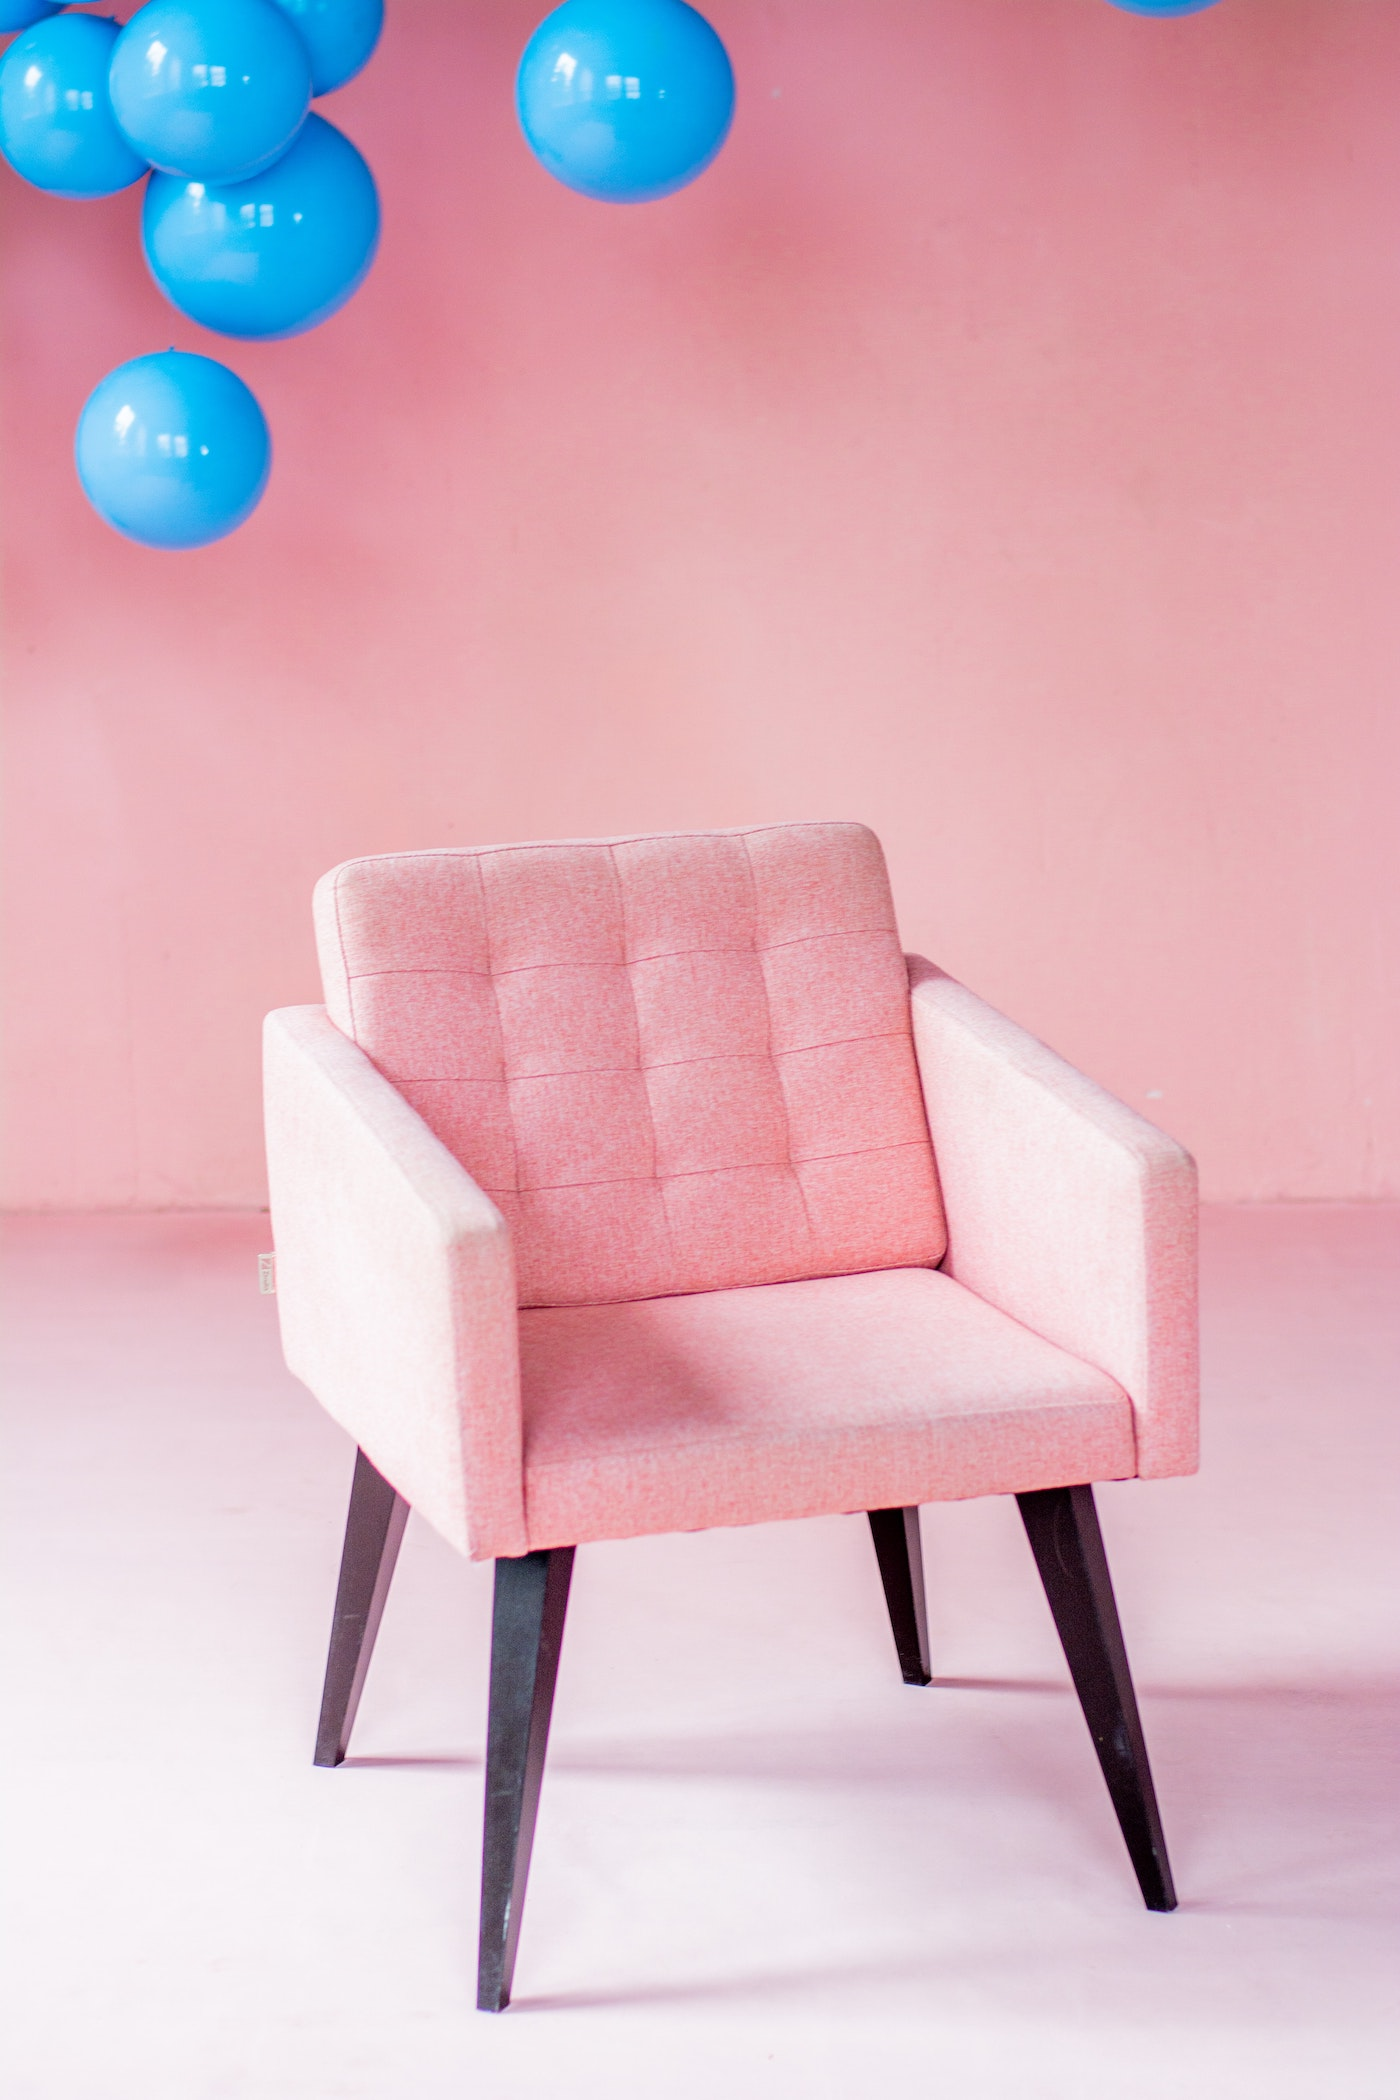 A pink lounge chair with blue balloons in background